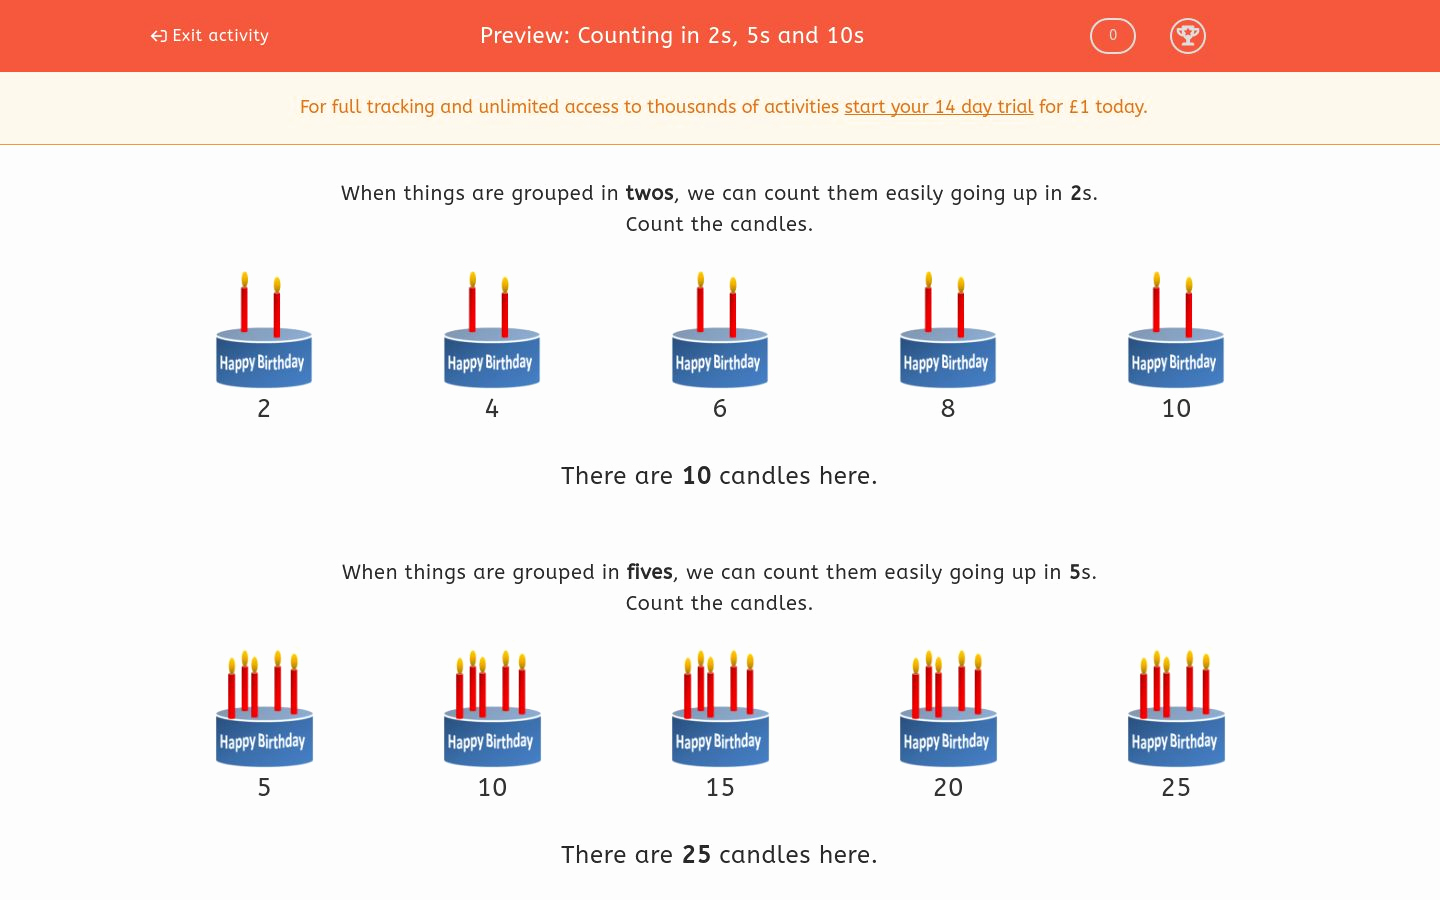 Counting In 5s Worksheet Unique Counting In 2s 5s and 10s Worksheet Edplace